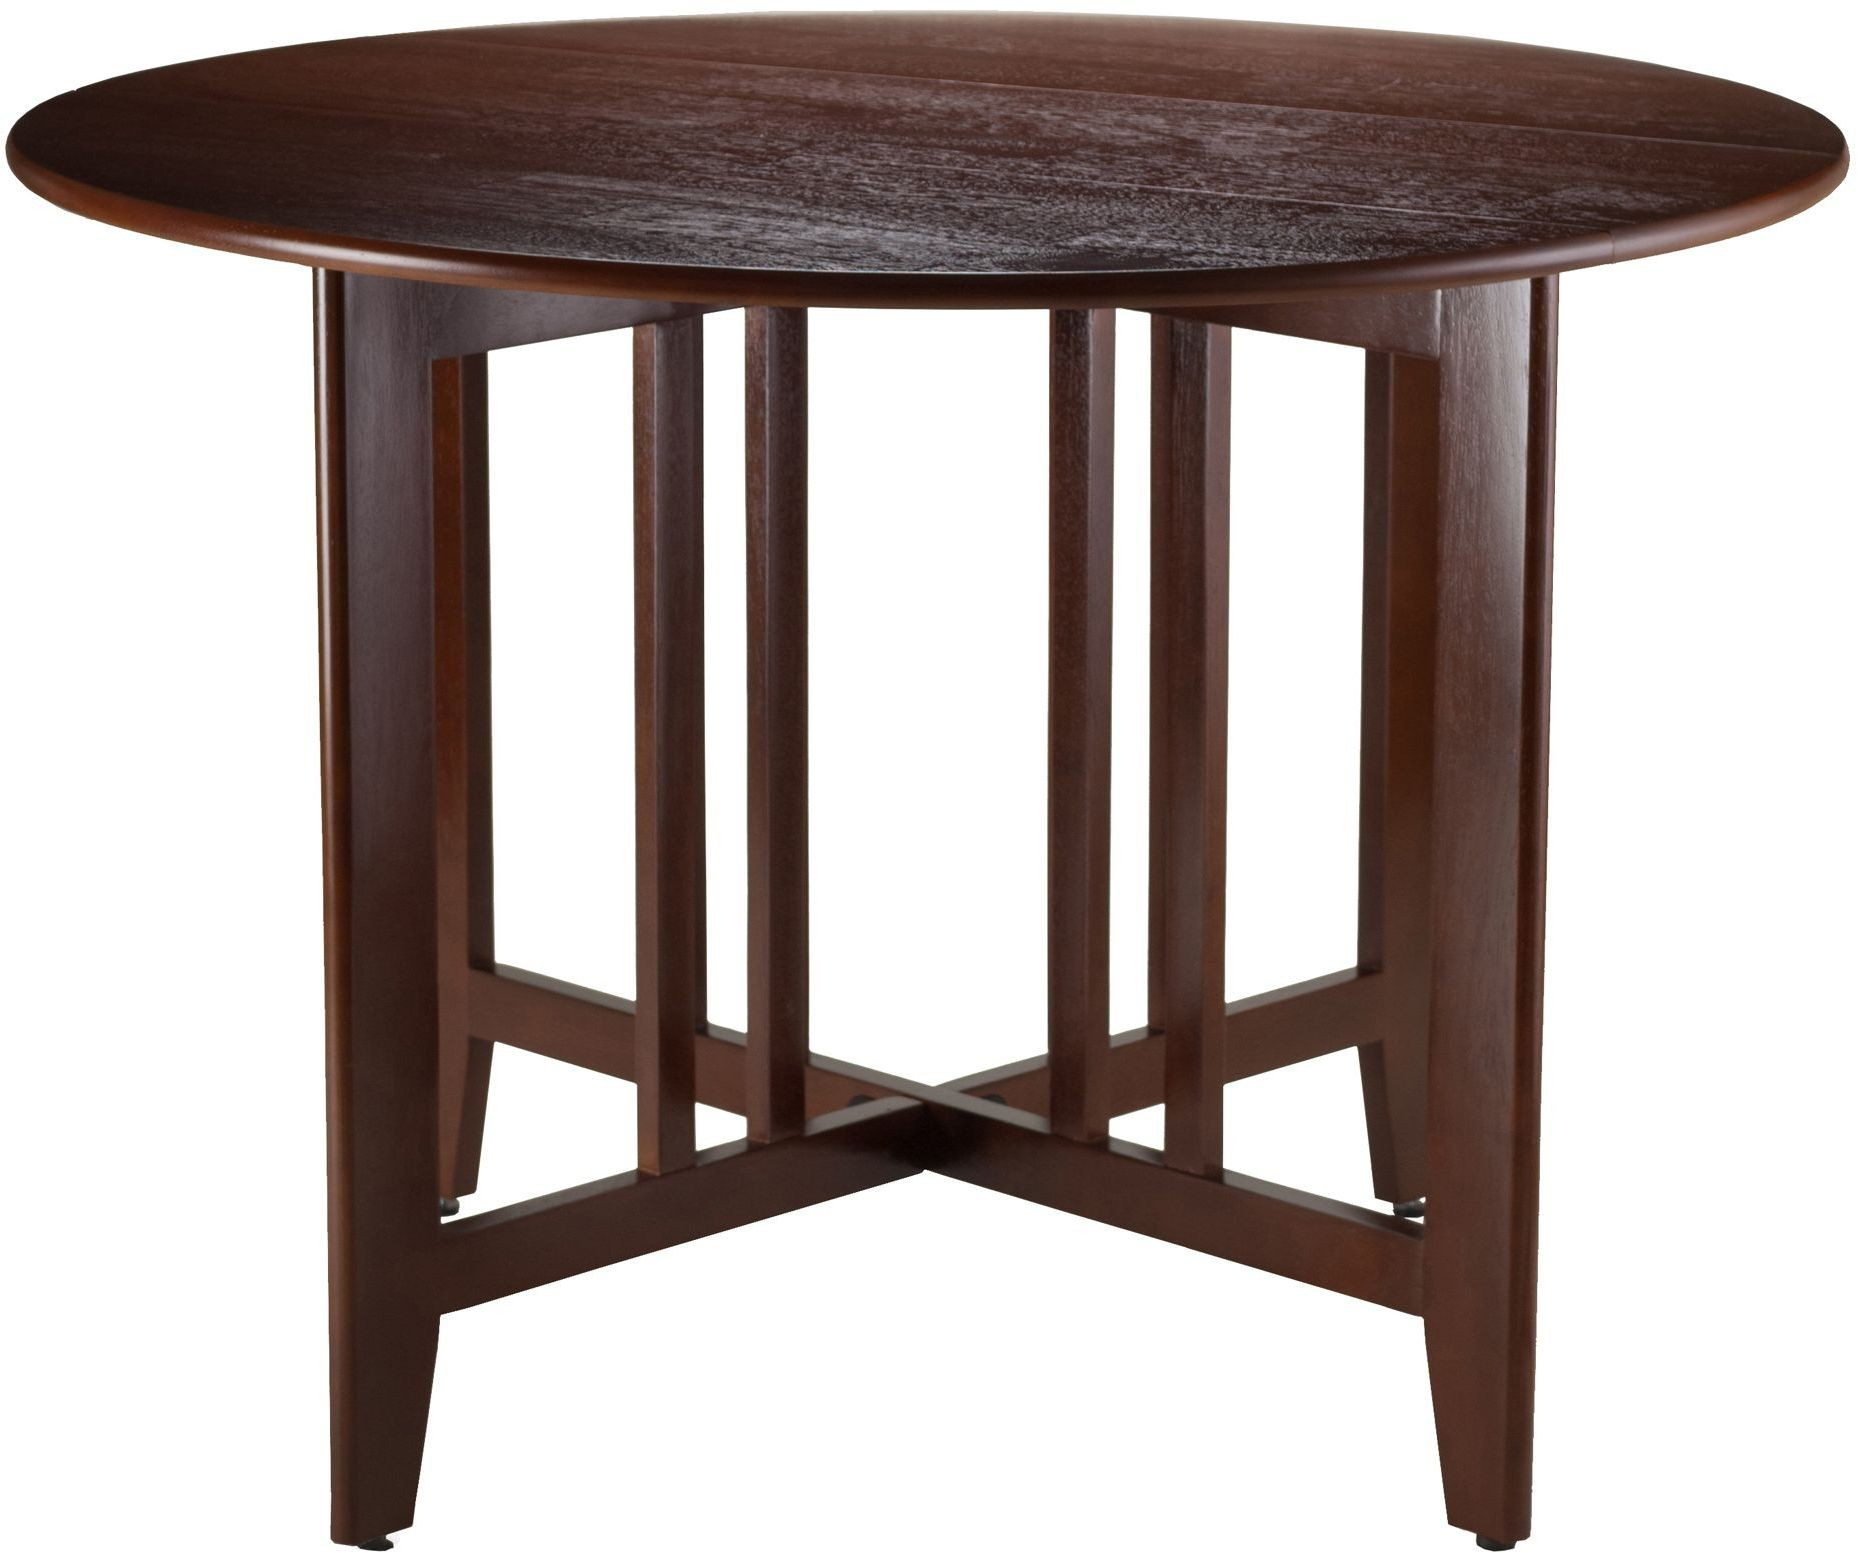 Alamo 42 double drop leaf round dining table from for Round drop leaf dining table